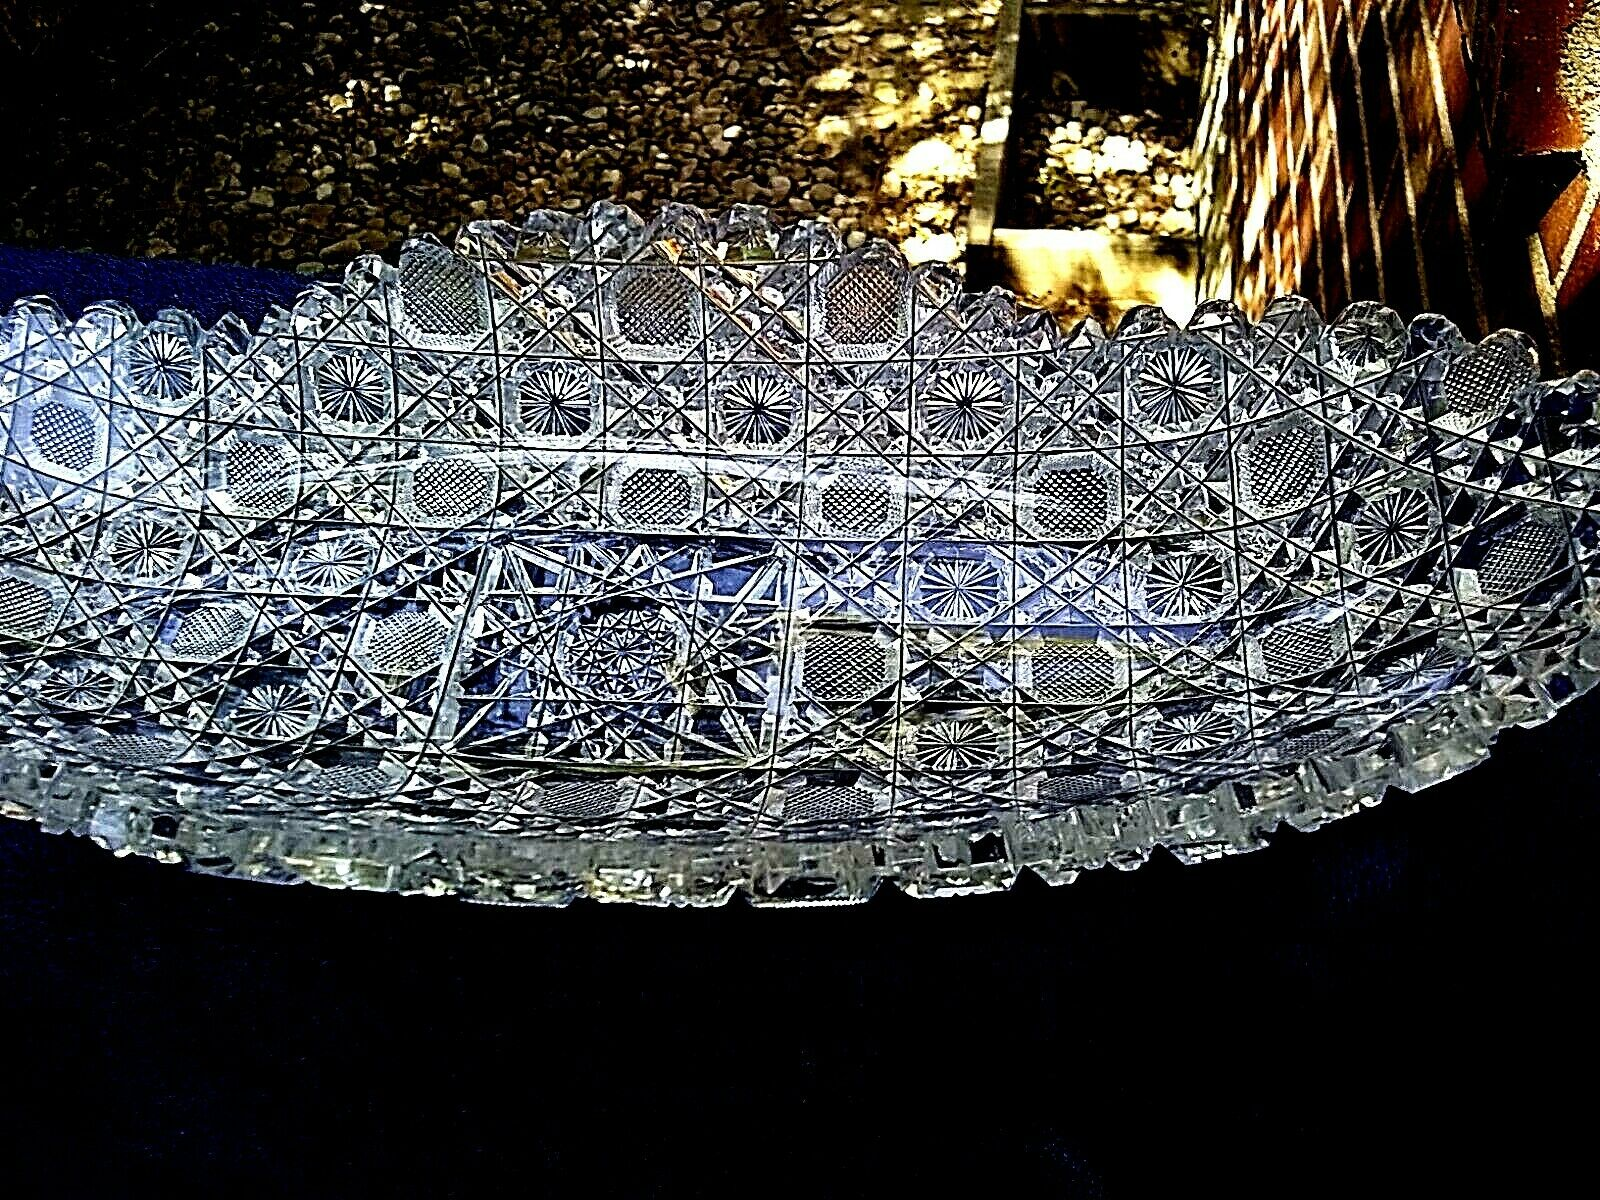 Heavy Cut Glass Daisy Button Celery Or Relish Dish - $35.00